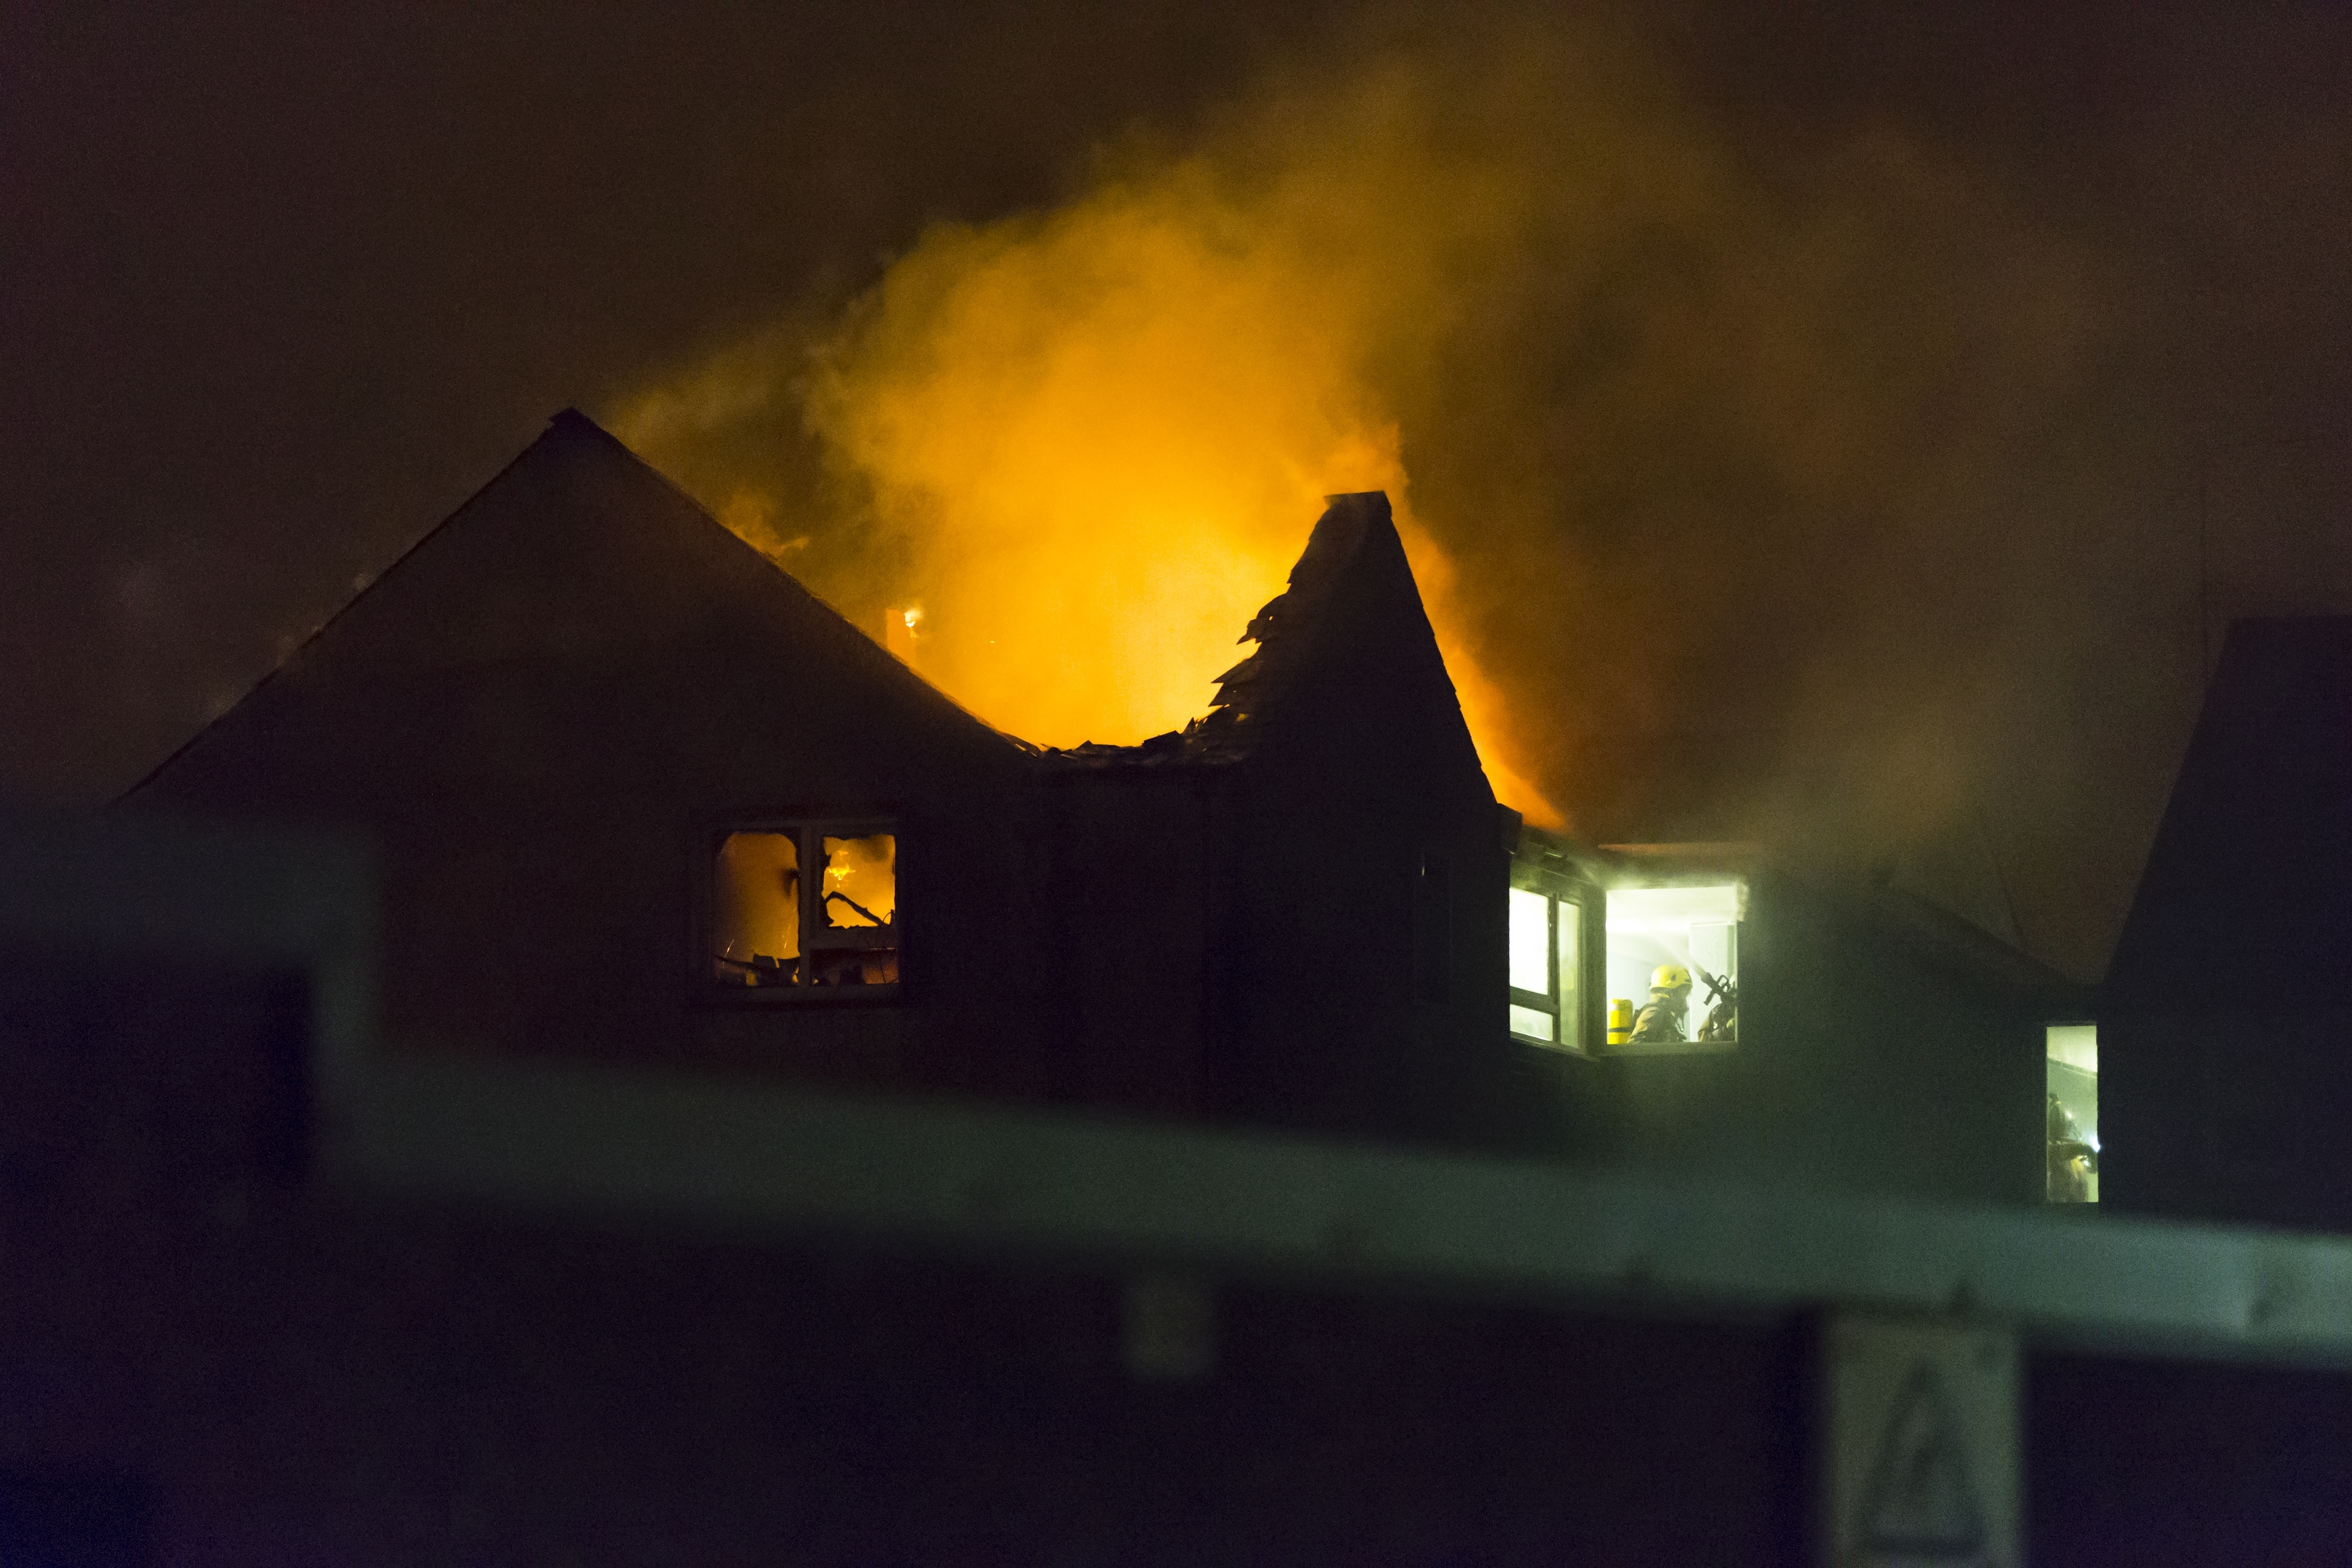 The building's roof collapsed in the blaze